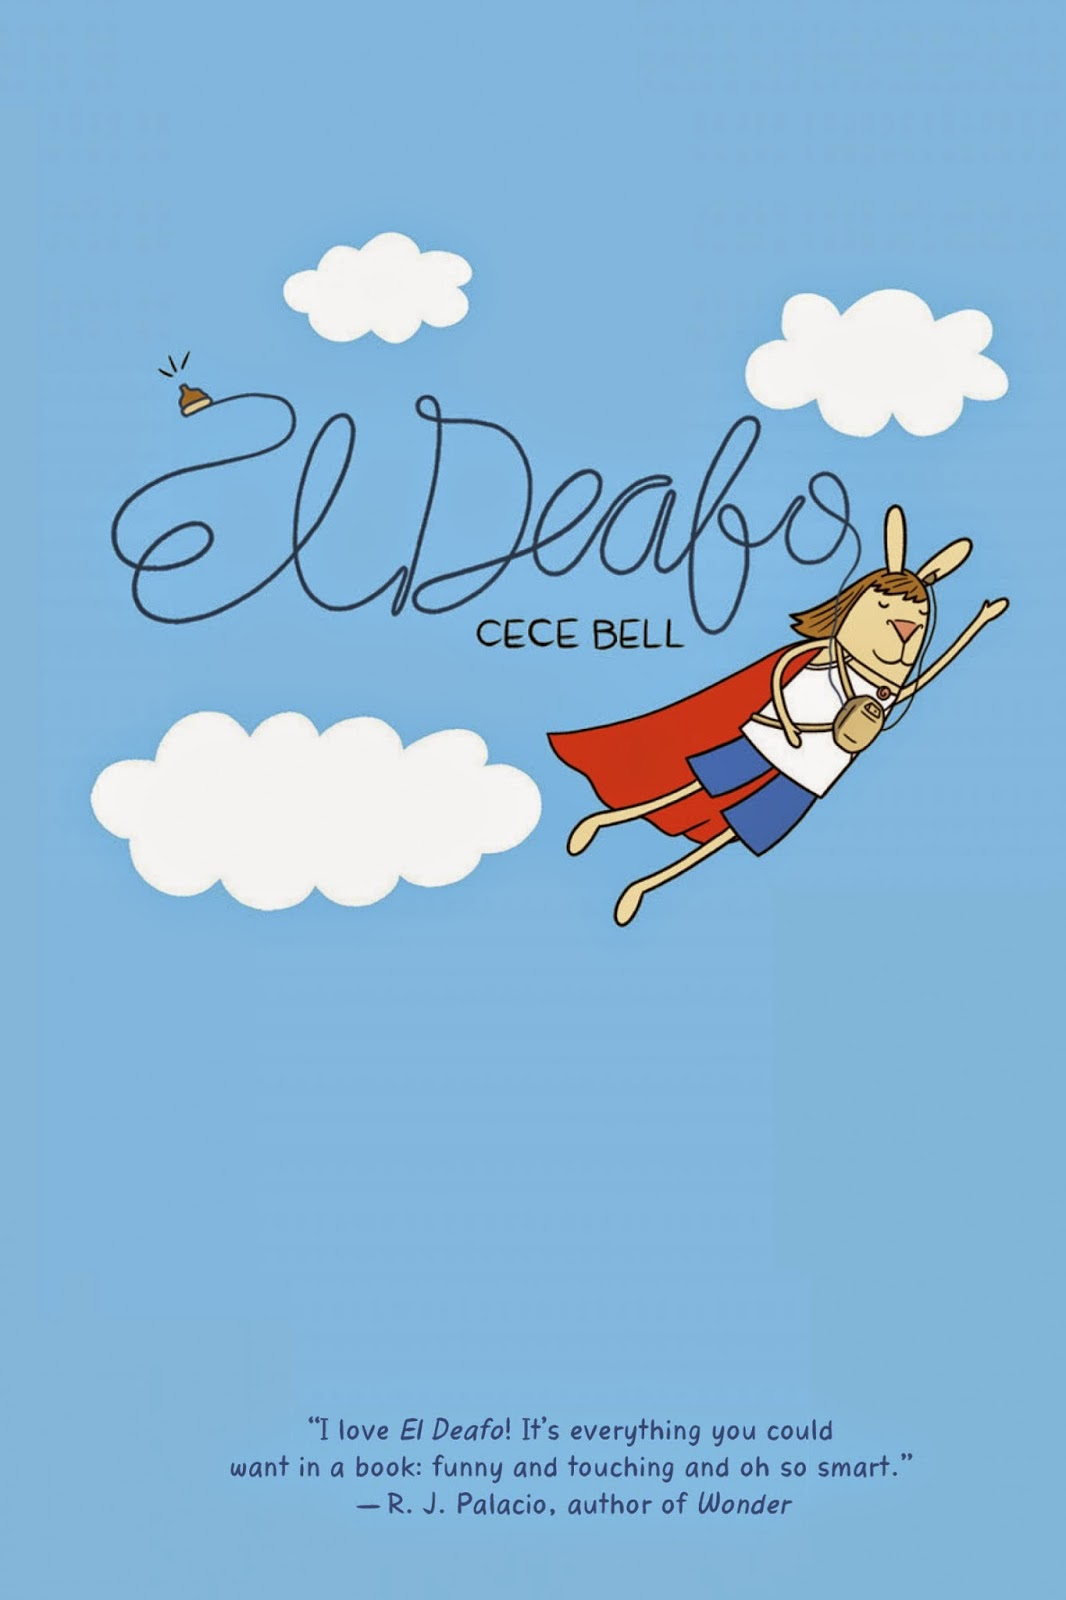 http://www.washingtonpost.com/entertainment/books/review-el-deafo-by-cece-bell/2014/09/23/947aab00-402e-11e4-b0ea-8141703bbf6f_story.html